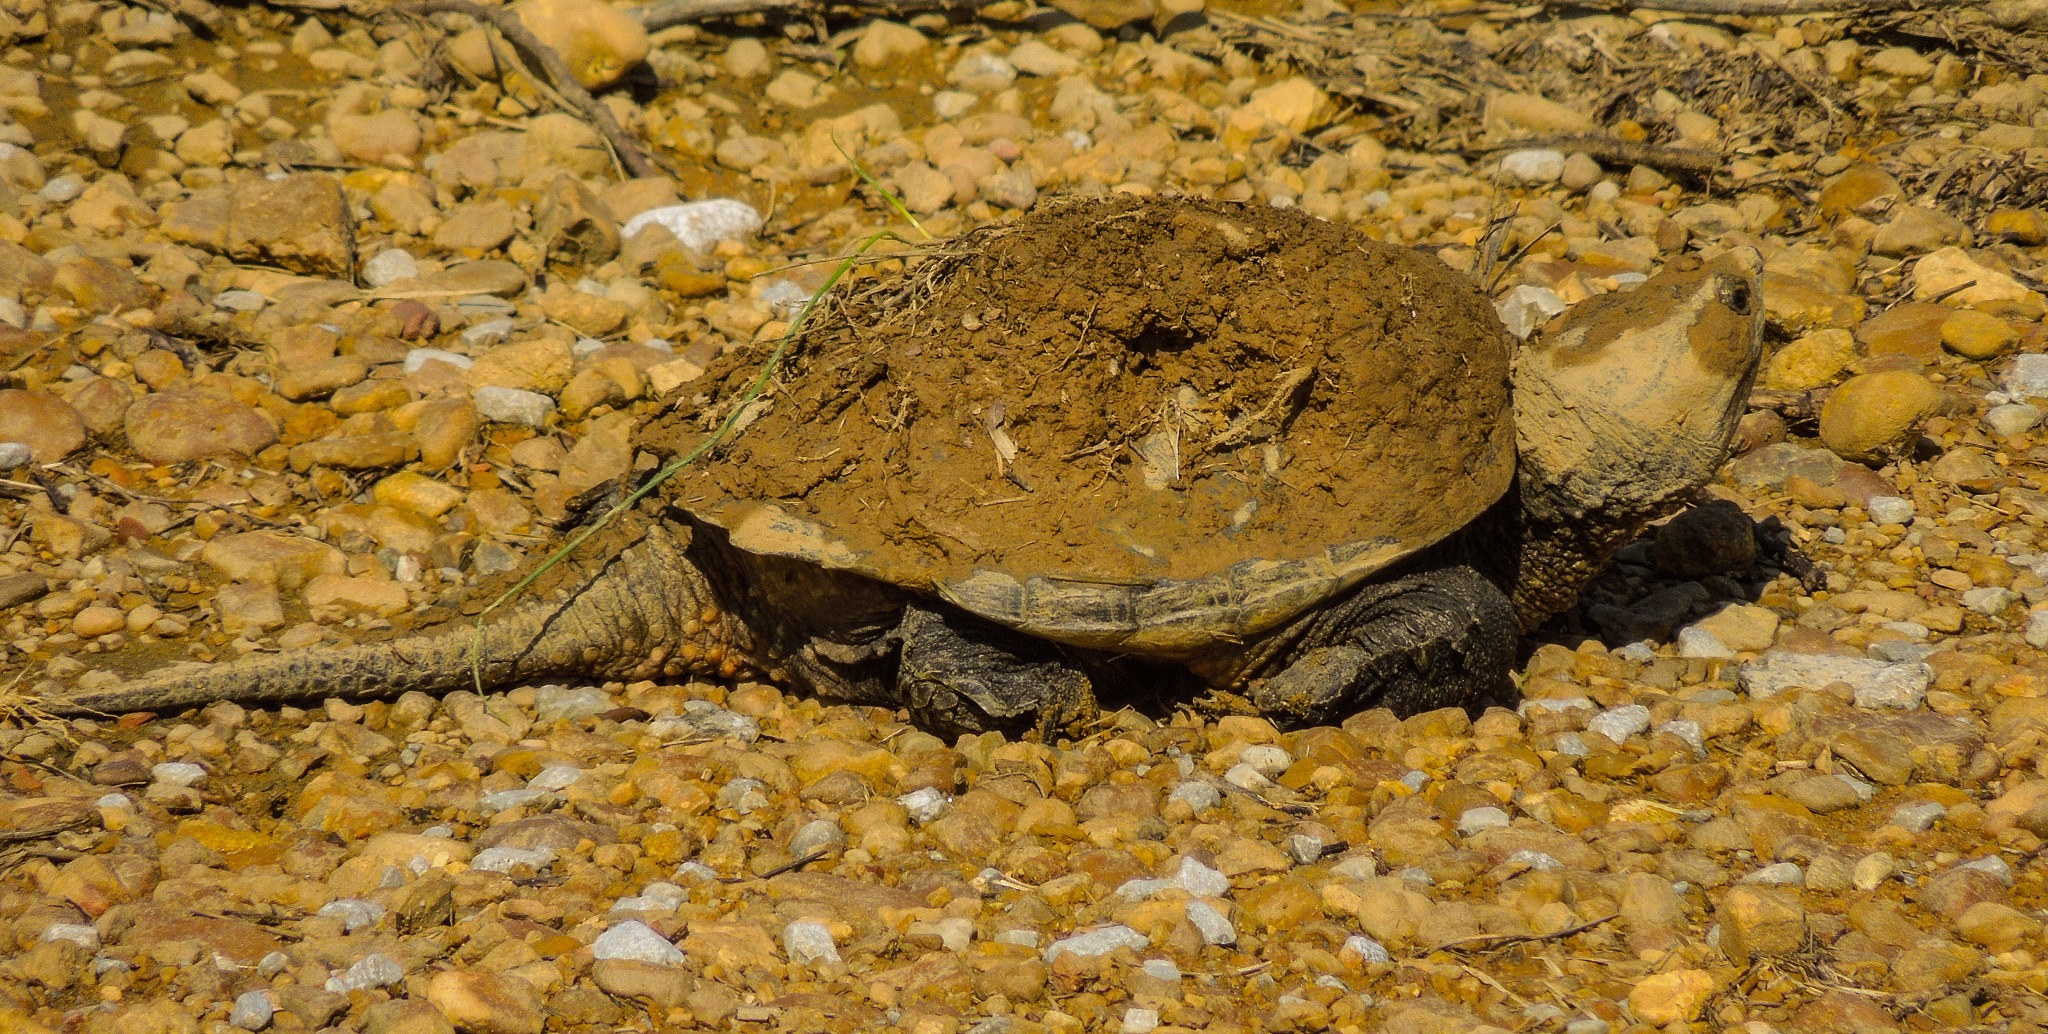 snapping turtle by amanda b.